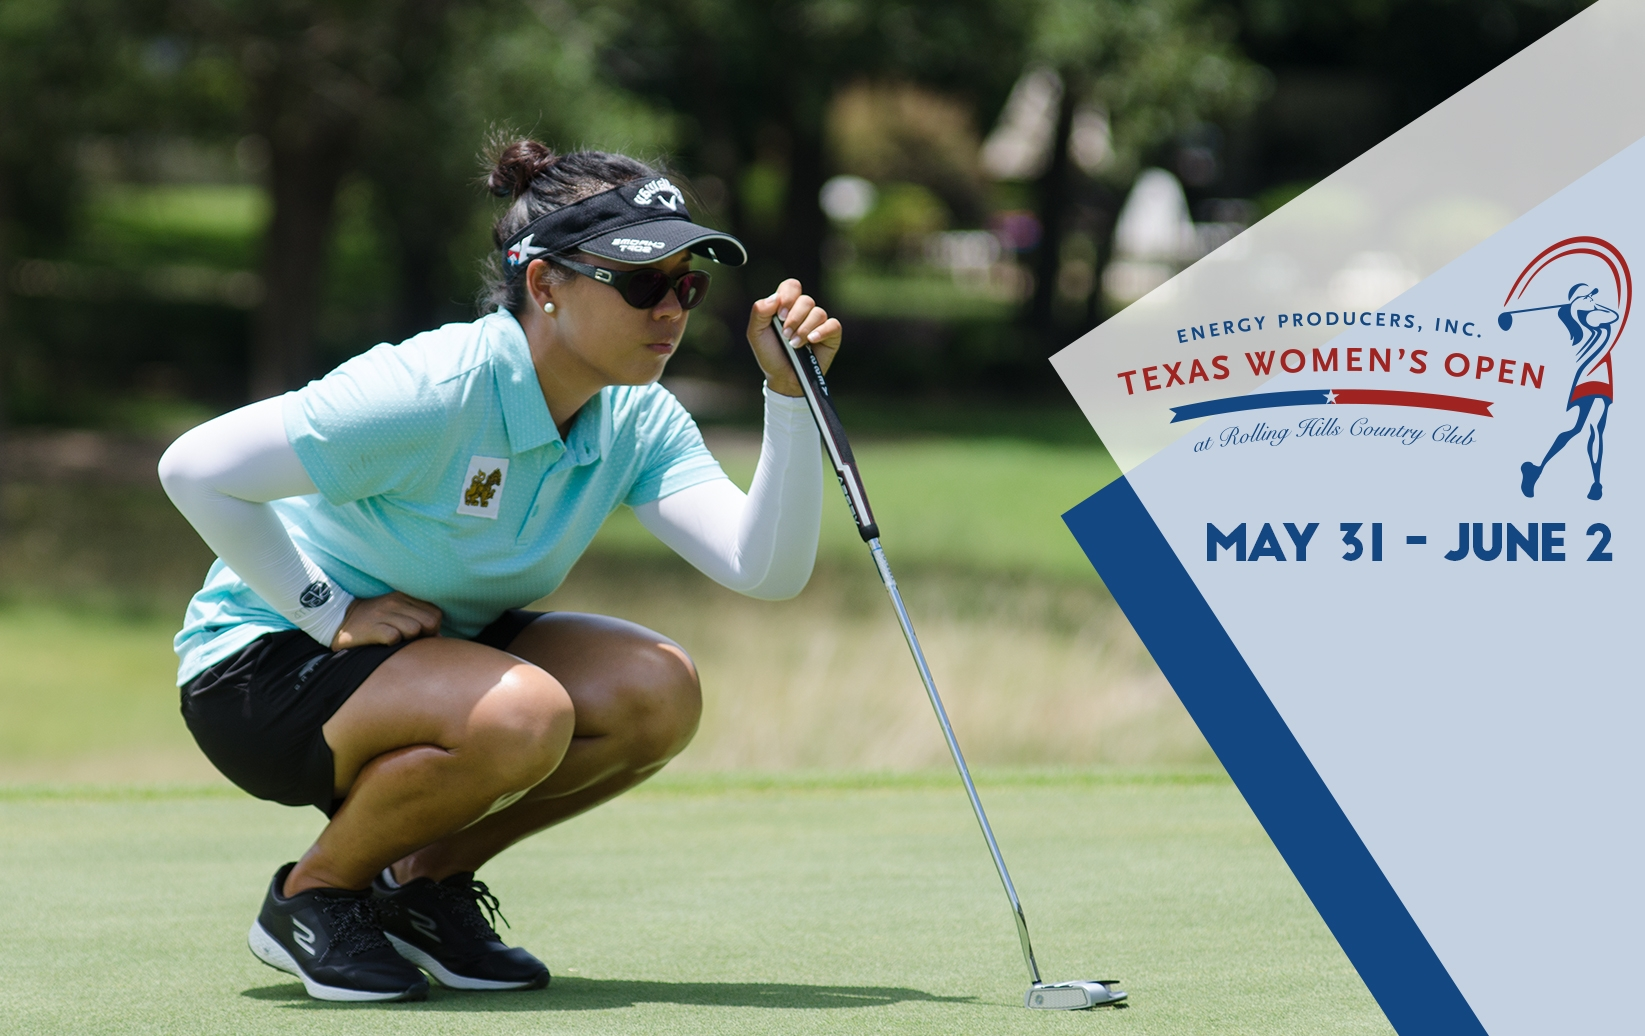 Deadline Approaching - 2018 Energy Producers, Inc. Texas Women's Open at Rolling Hills Country Club